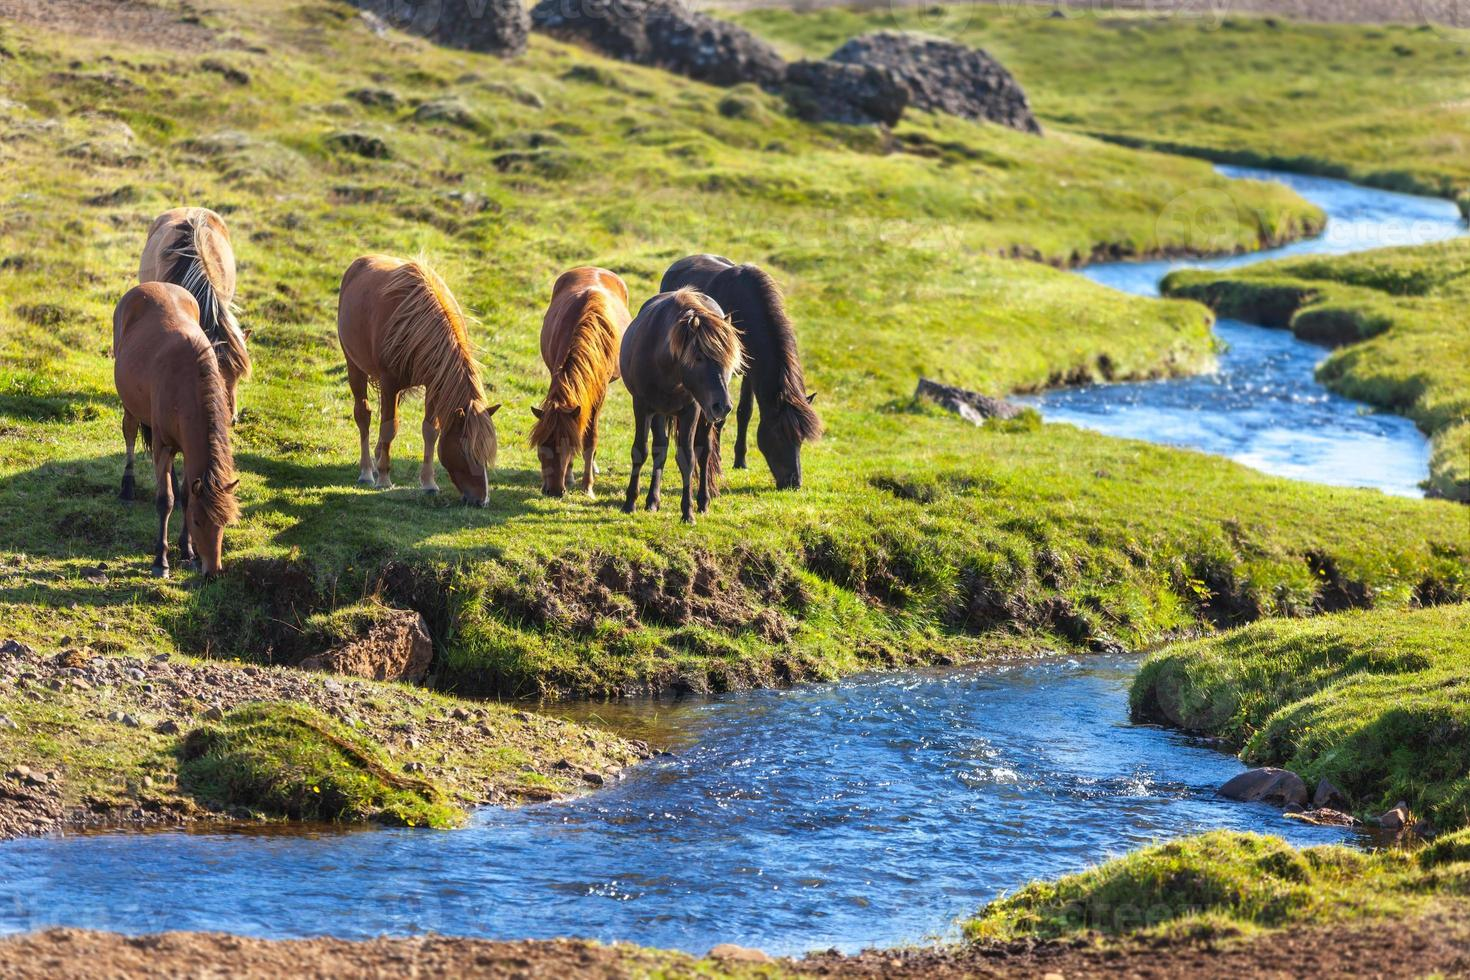 Horses in a green field at Iceland Rural landscape photo